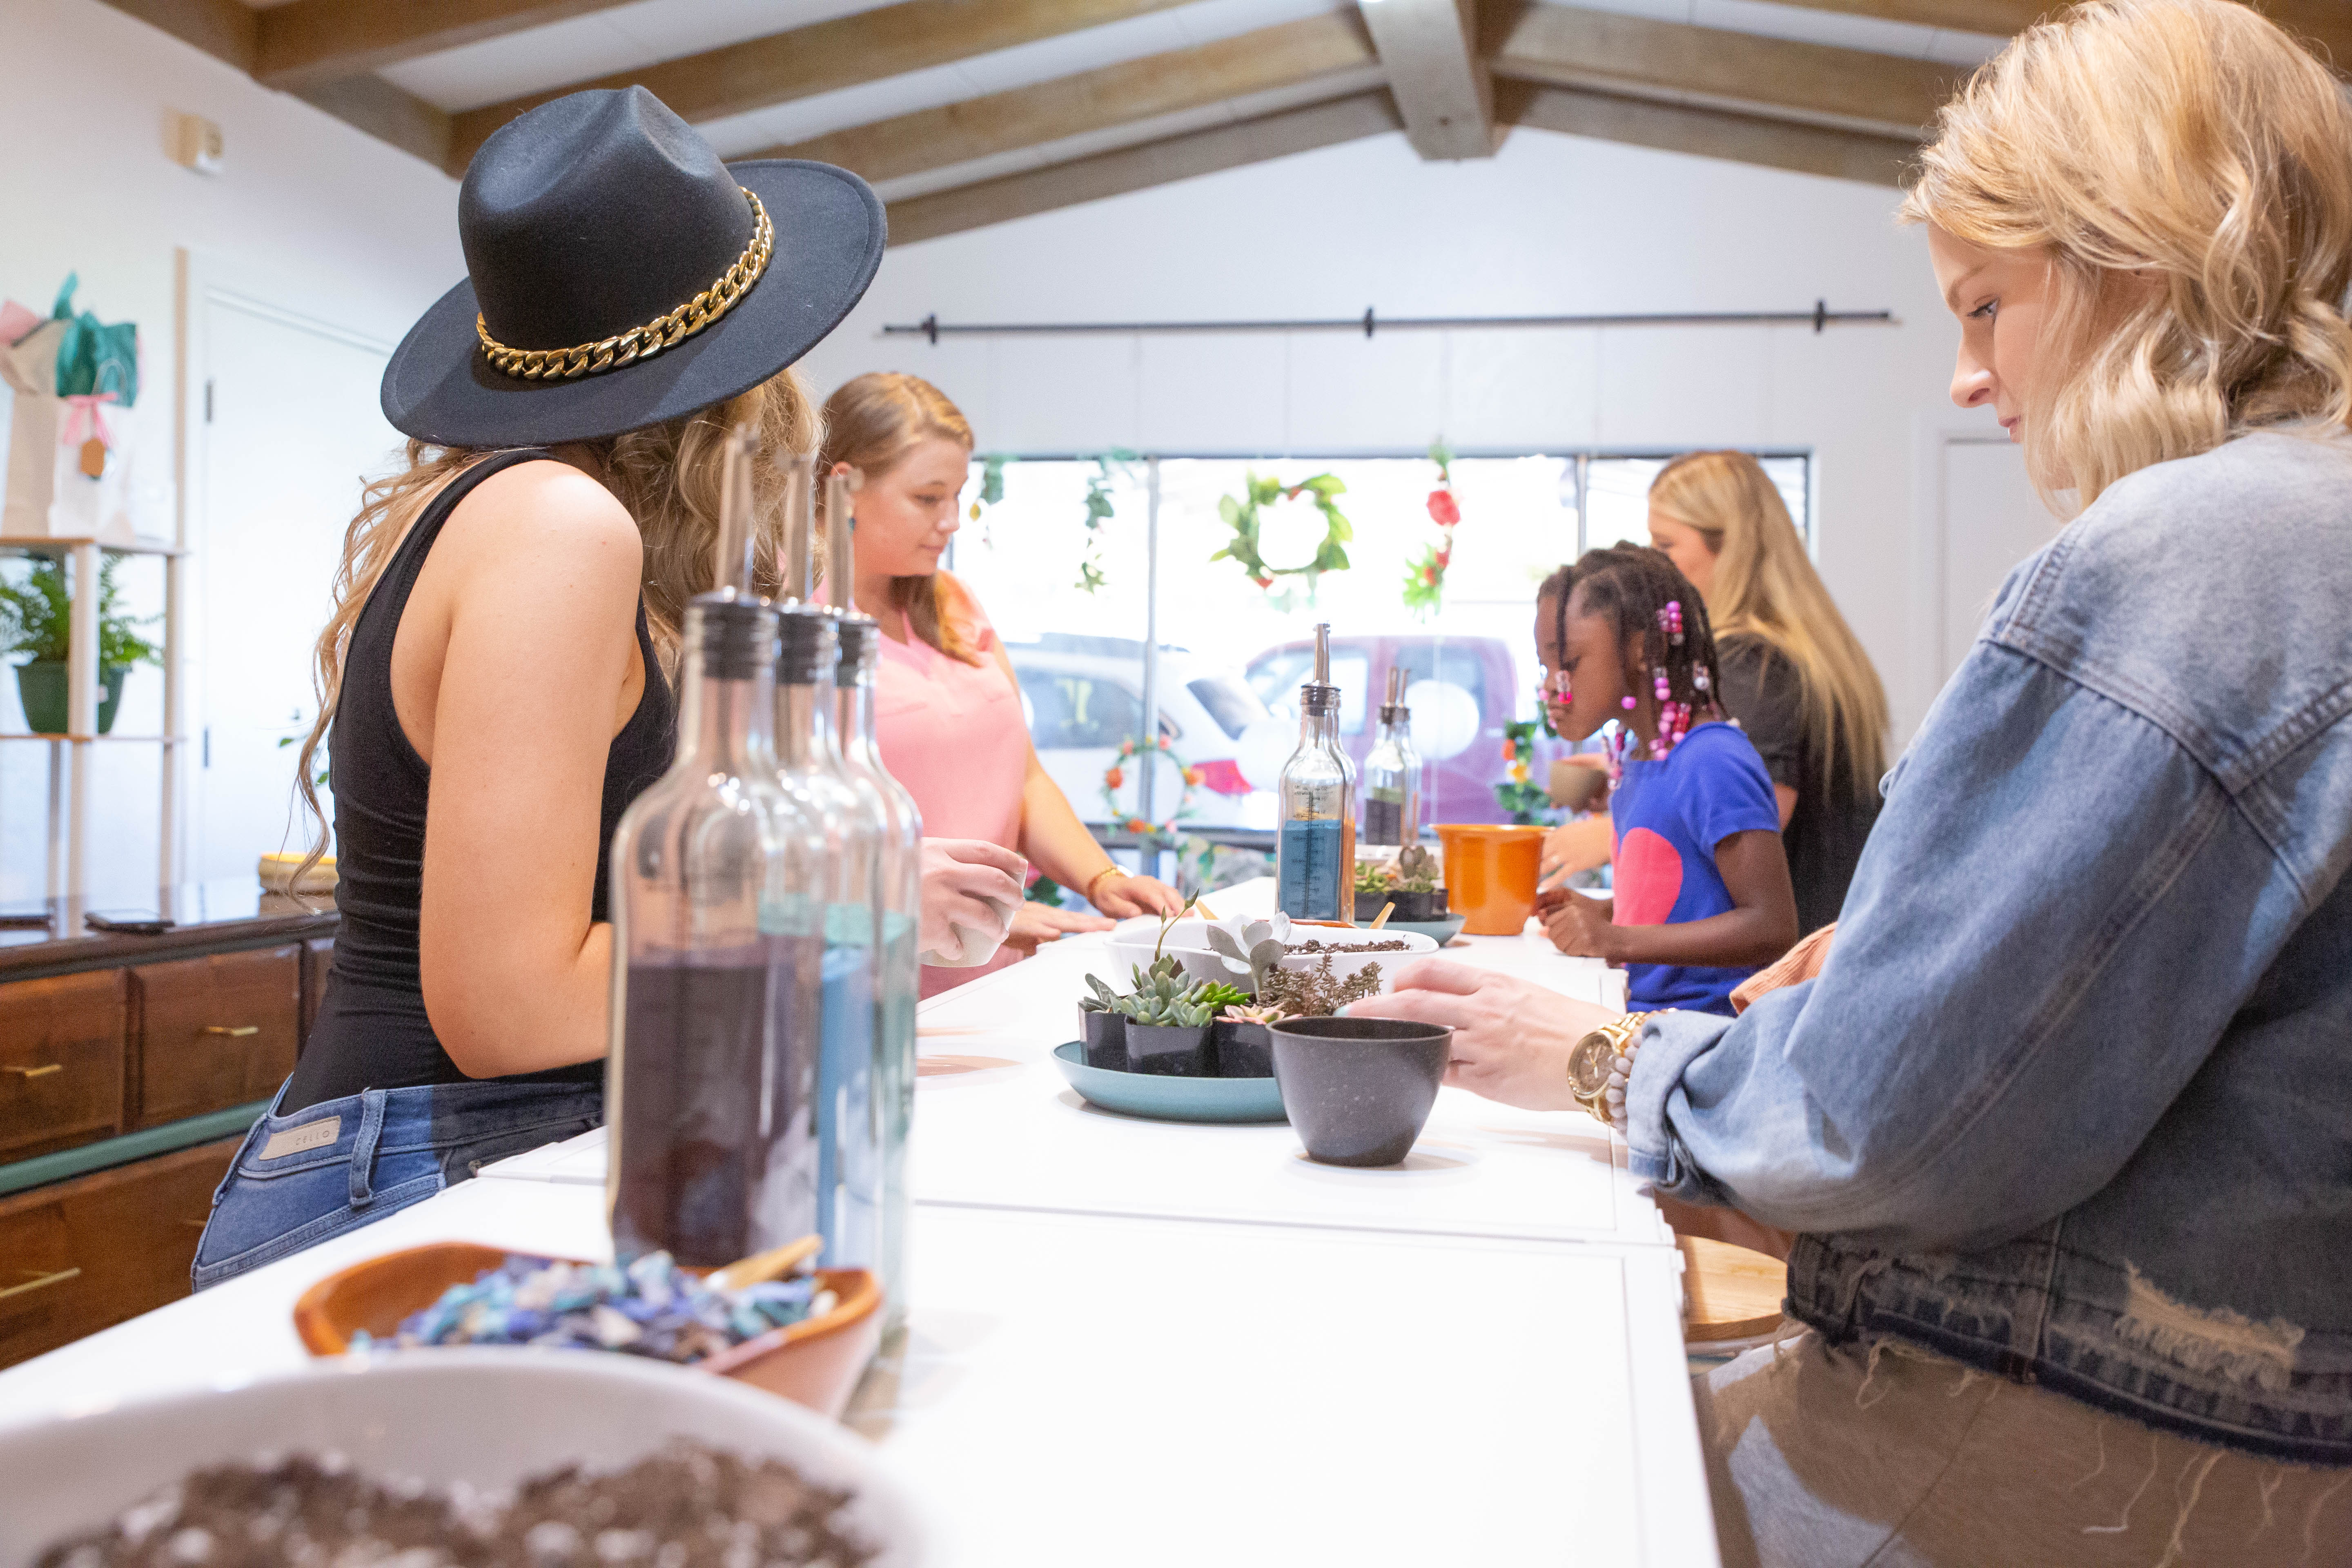 Young women and a child plant succulents into planters at table in a colorful, brightly lit room.